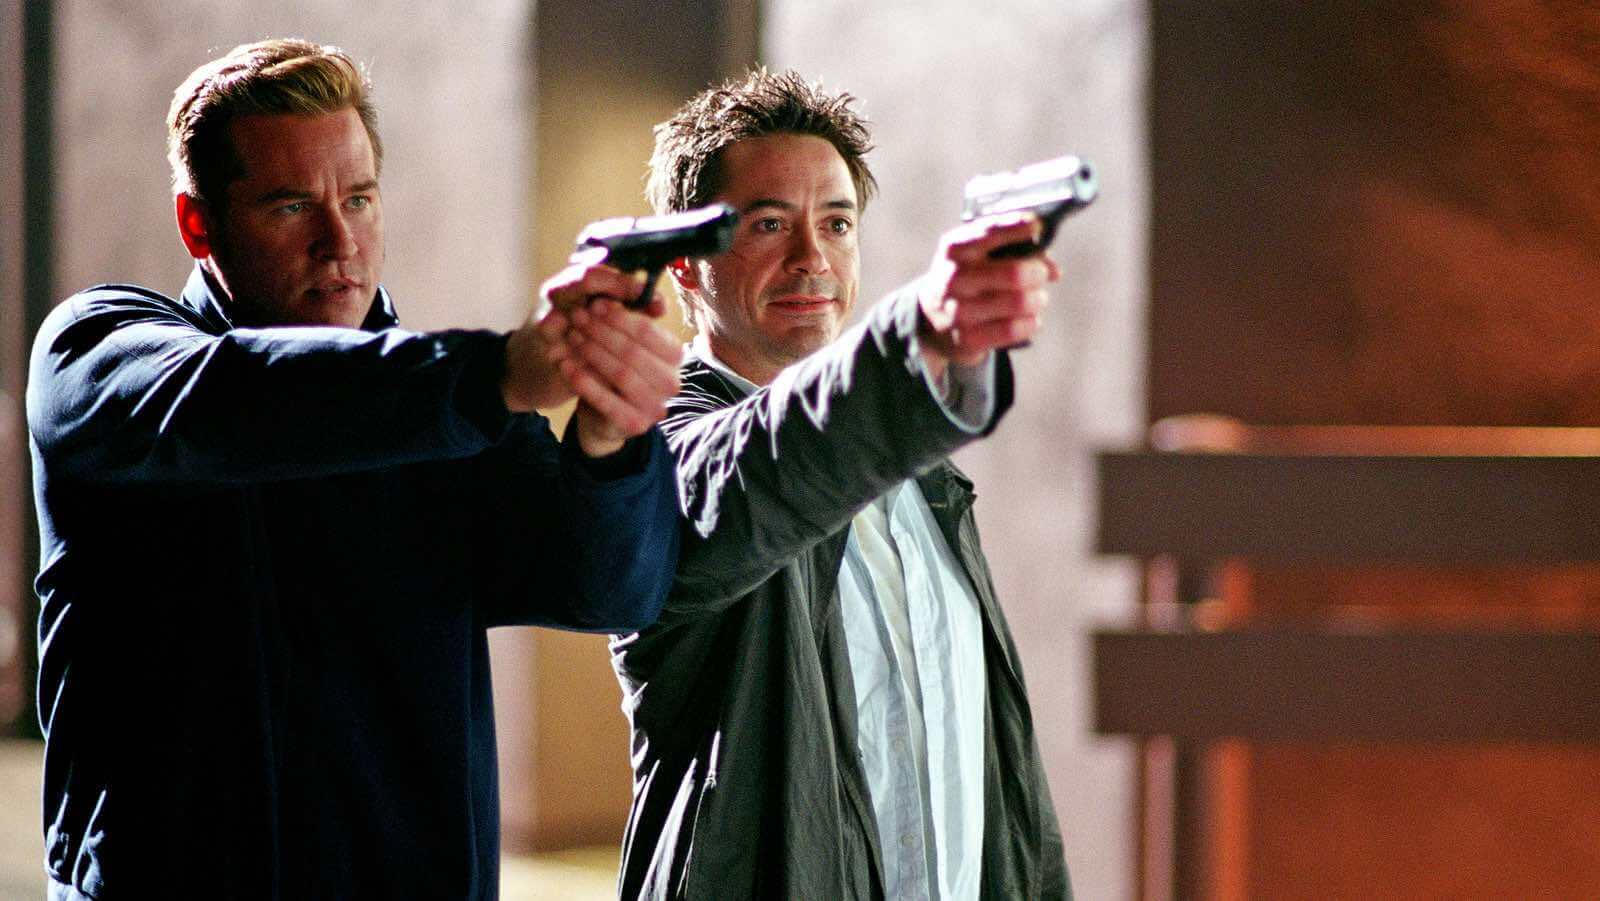 Dark Comedy Movies - Kiss Kiss Bang Bang